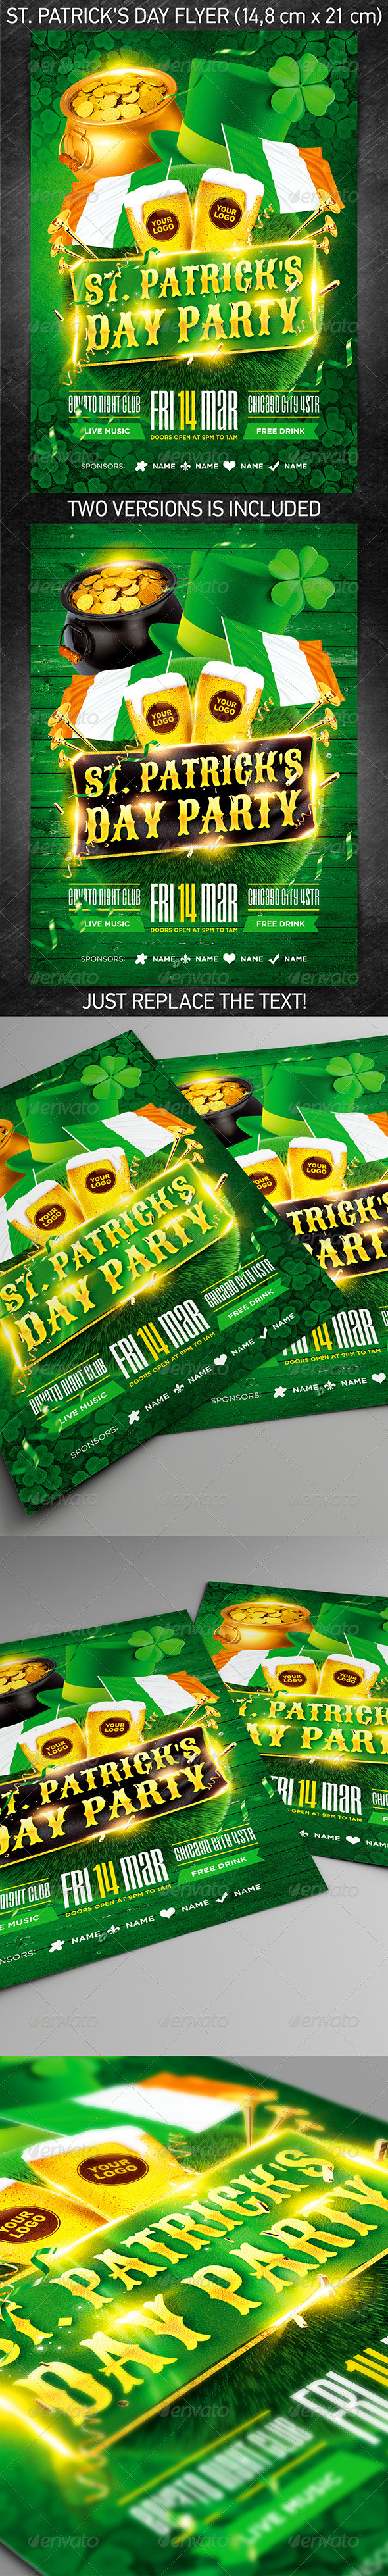 St. Patrick's Day Flyer Vol.3 - Holidays Events